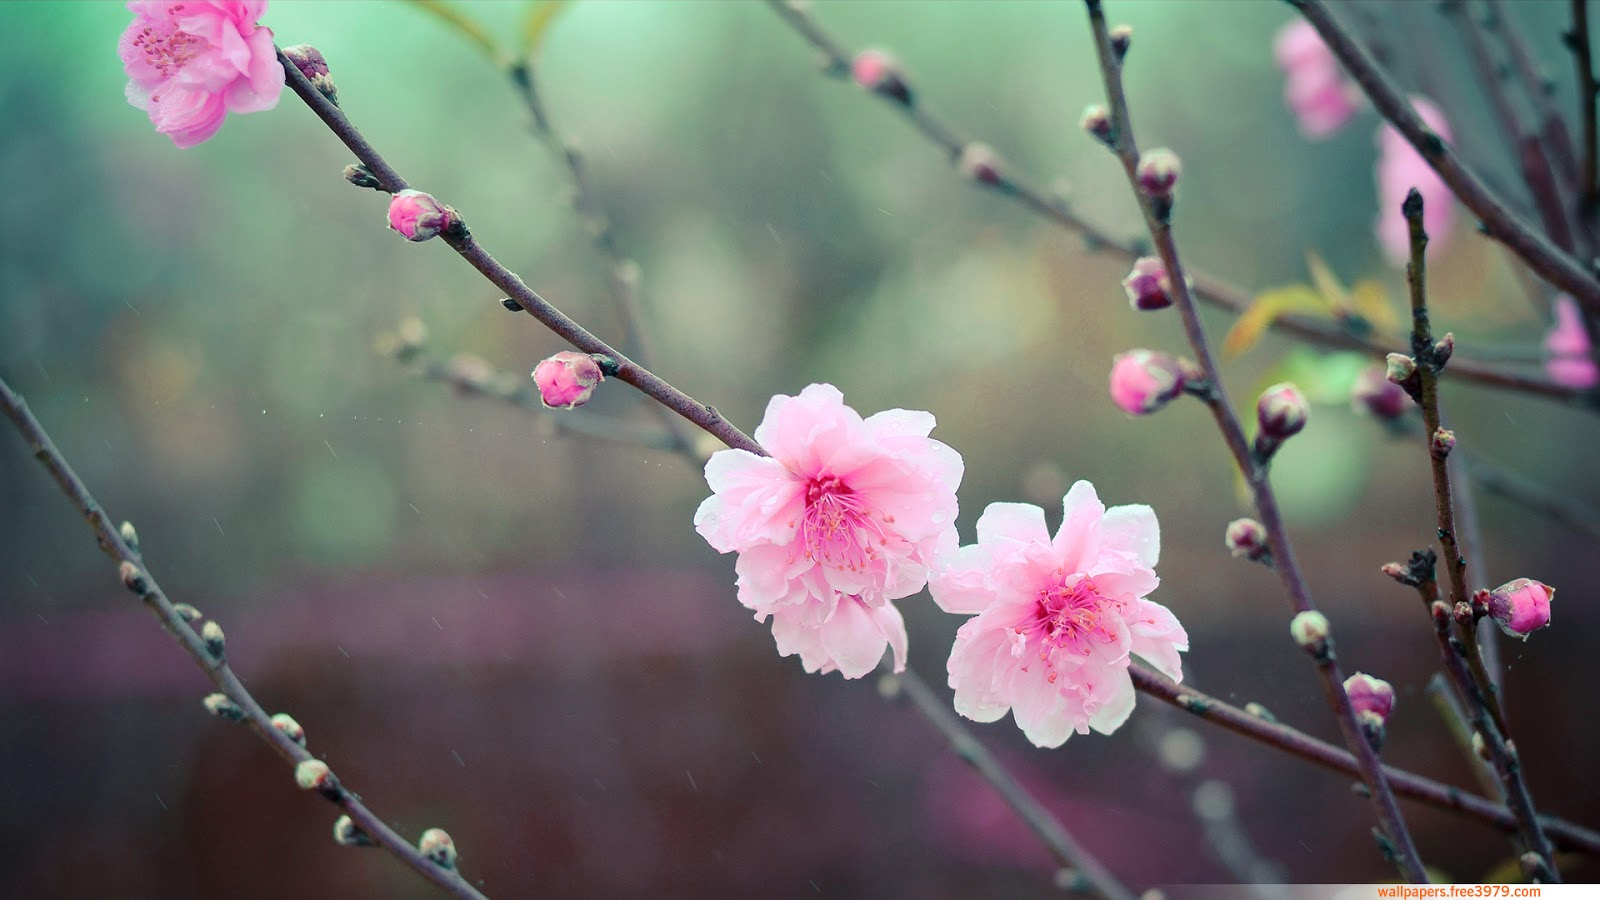 Wallpapers Wallpaper  20  Asian Cherry Blossom Flower Cherry Blossom Flower